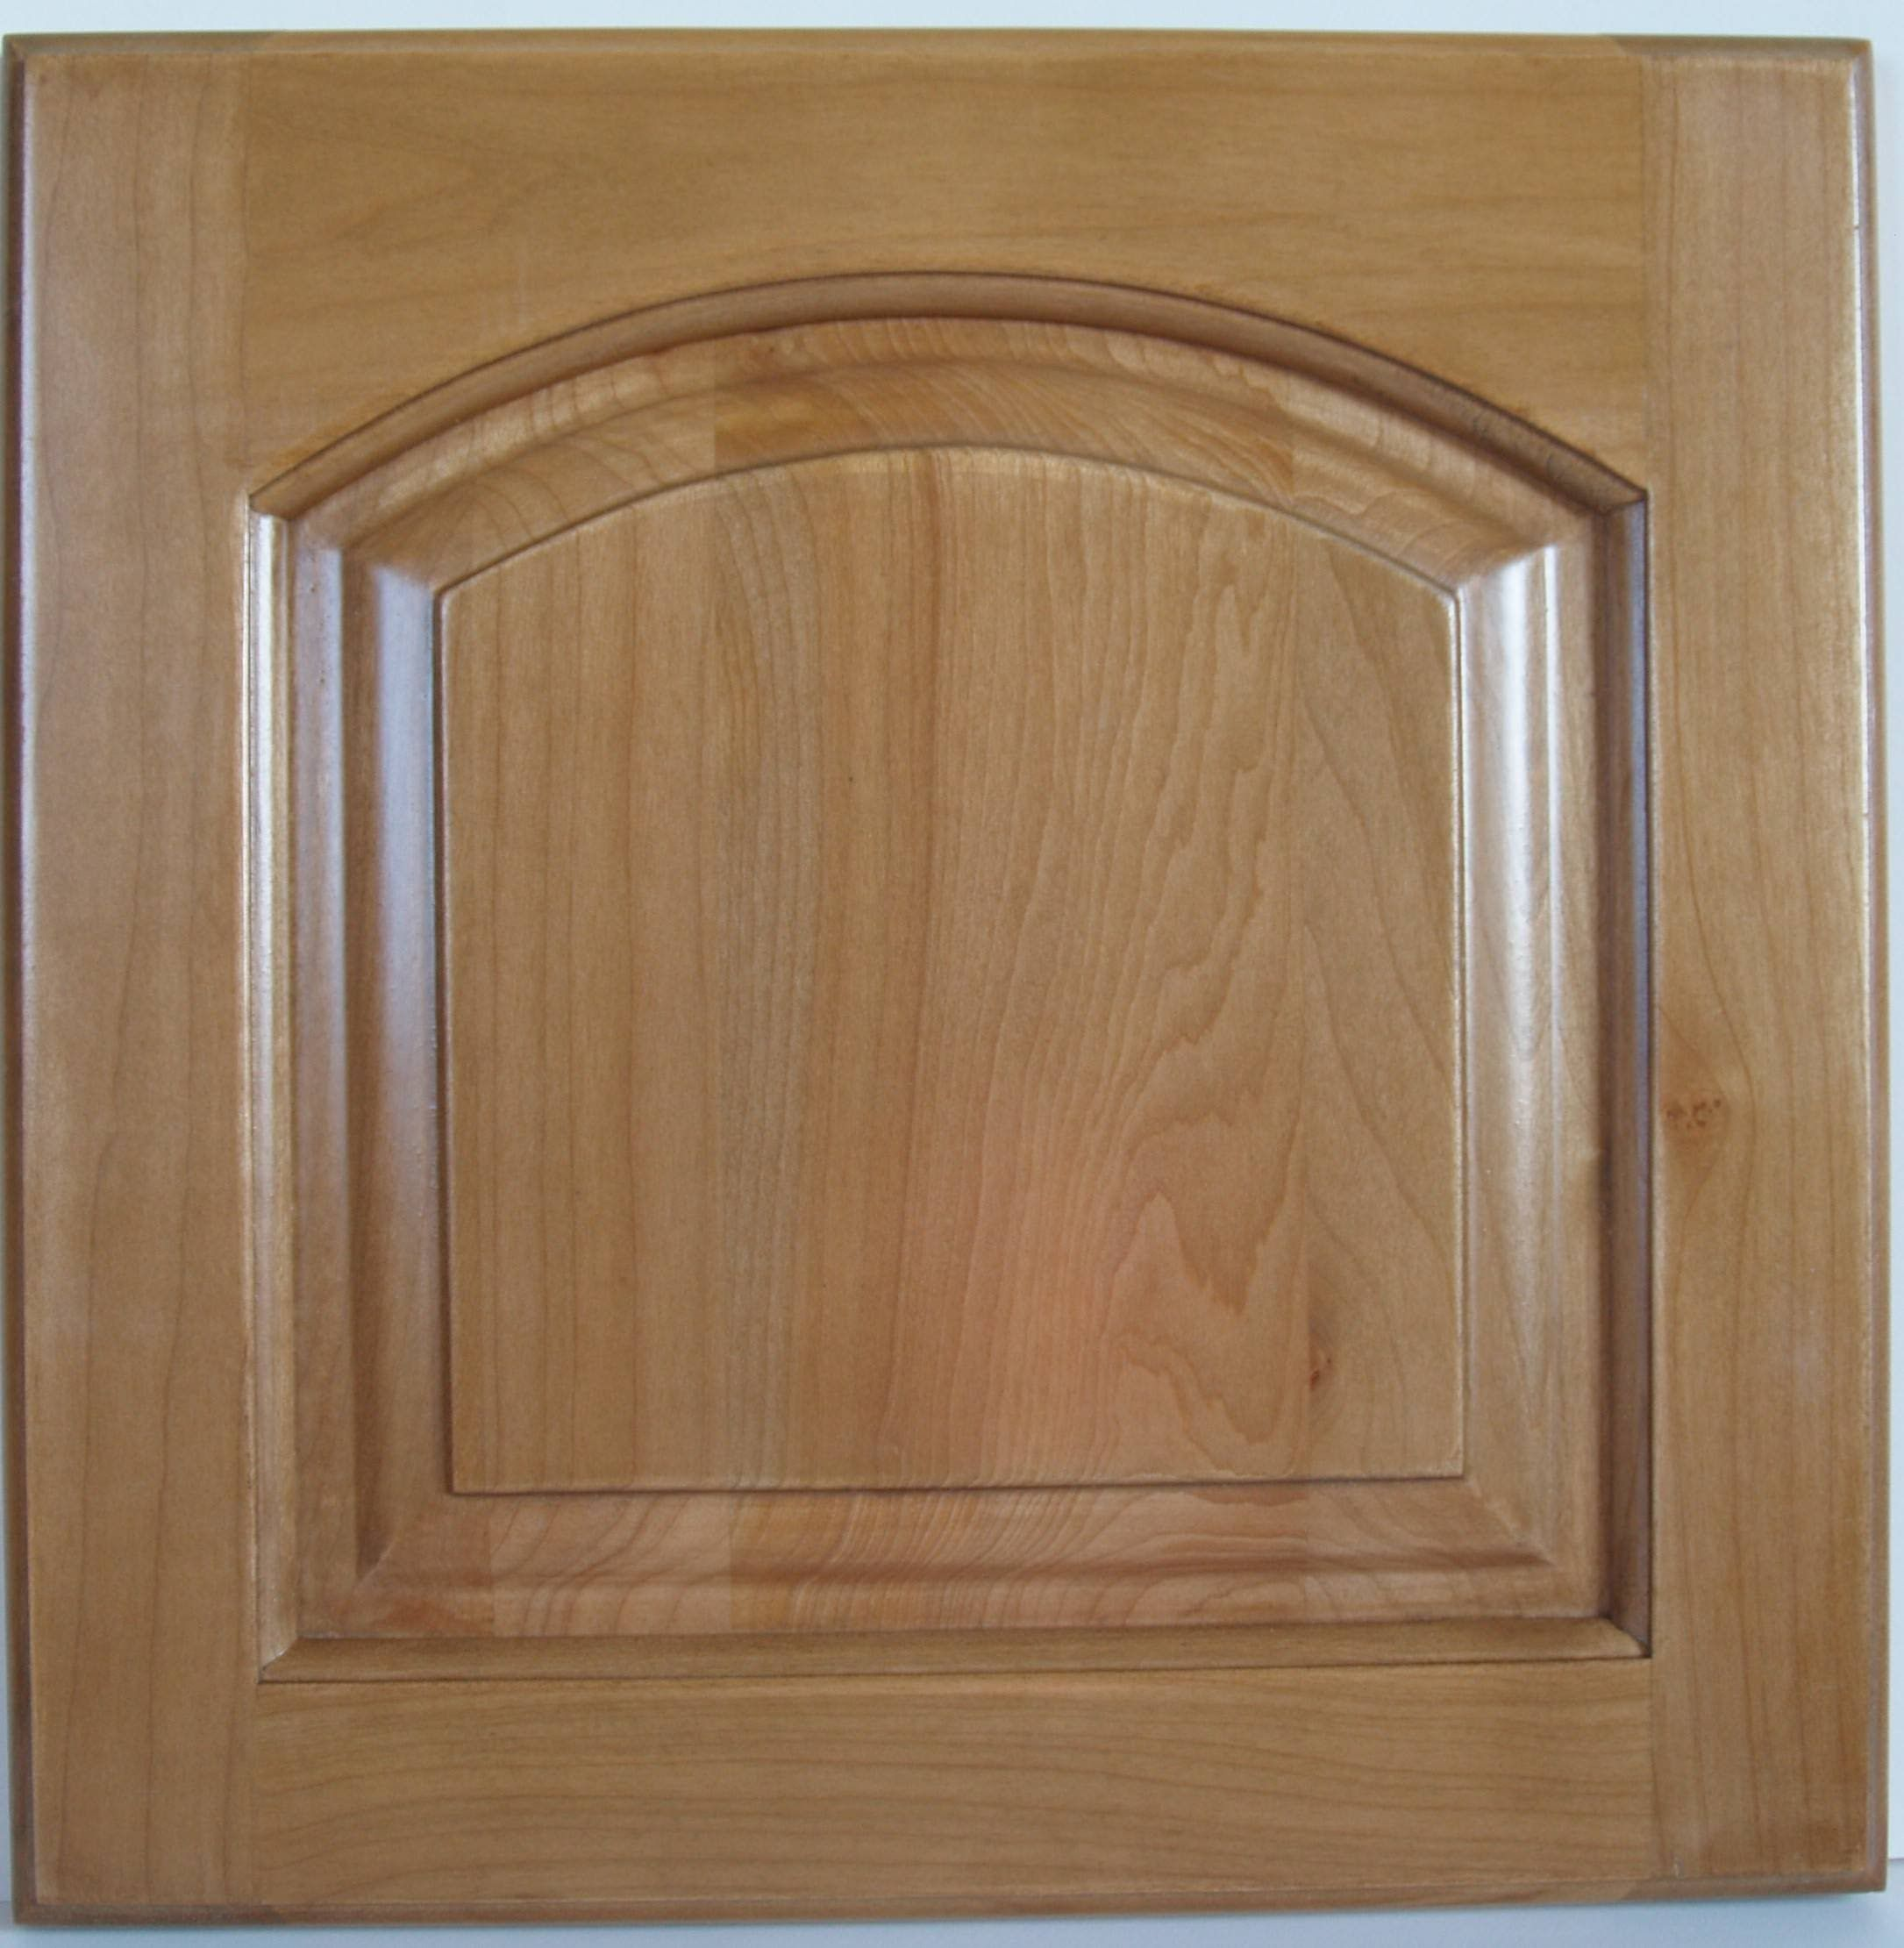 Image Result For Rounded Top Kitchen Cabinets Kitchen Cabinet Door Styles Cabinet Door Styles Cabinet Doors